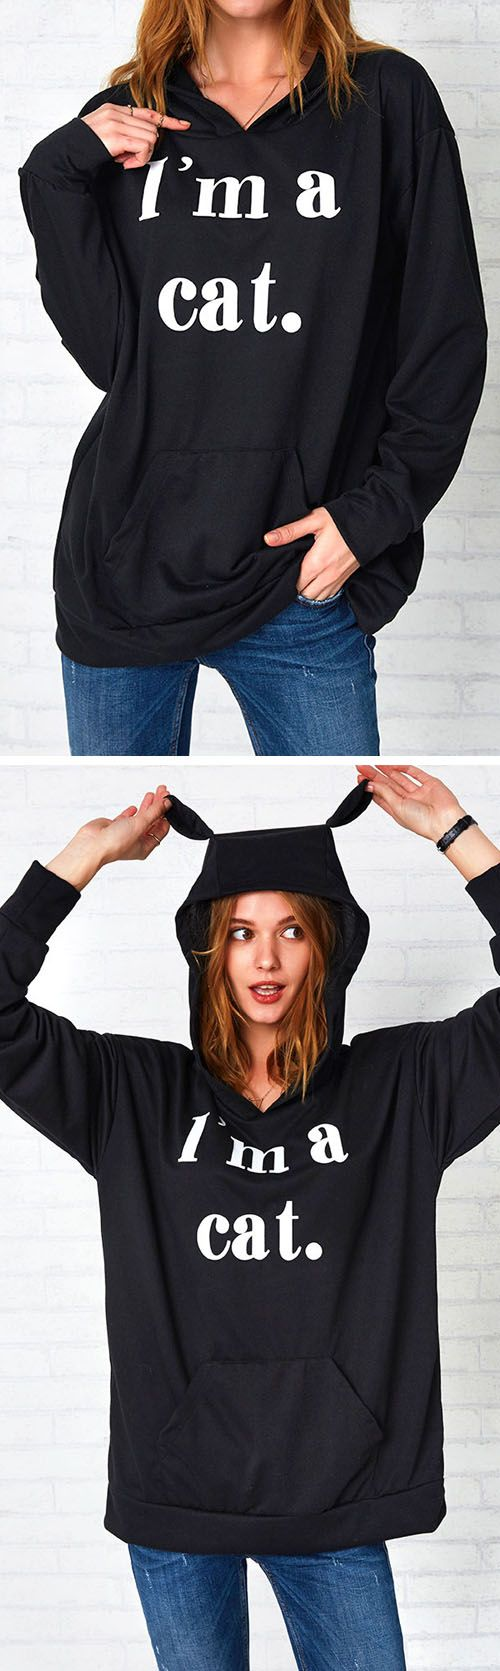 Go ahead--crop to it with $27.99 Only.This Hoodie Sweatshirt is made in soft and comfy cotton and features ear hood design, letters pattern. Take it, fall in love with this fall! Get it at Cupshe.com